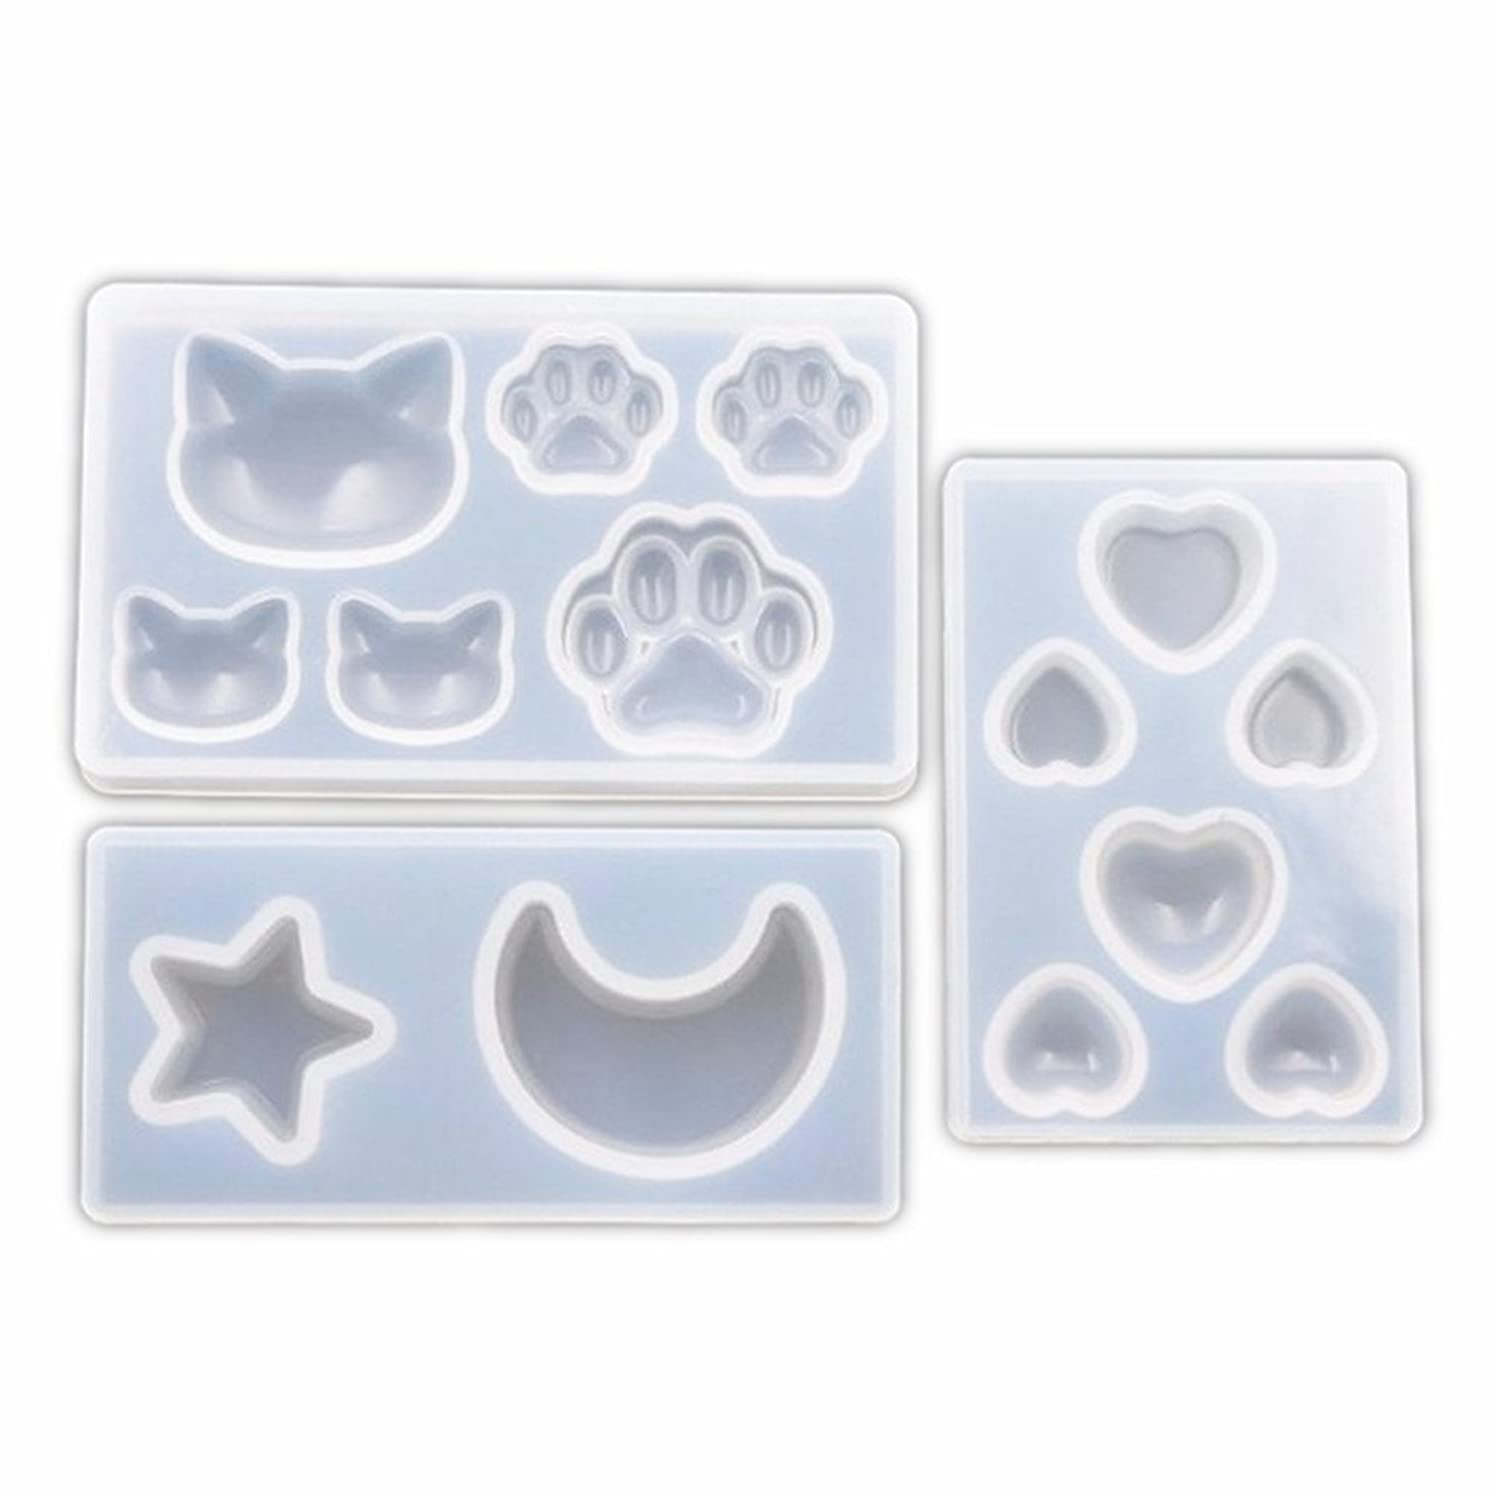 3 Pcs Star Moon/Cat Footprint/Love Heart Jewelry Silicone Mold with Hole for Polymer Clay, Crafting, Resin Epoxy, Pendant Earrings Making, DIY Mobile Phone Decoration Tools 010168/010169/010170